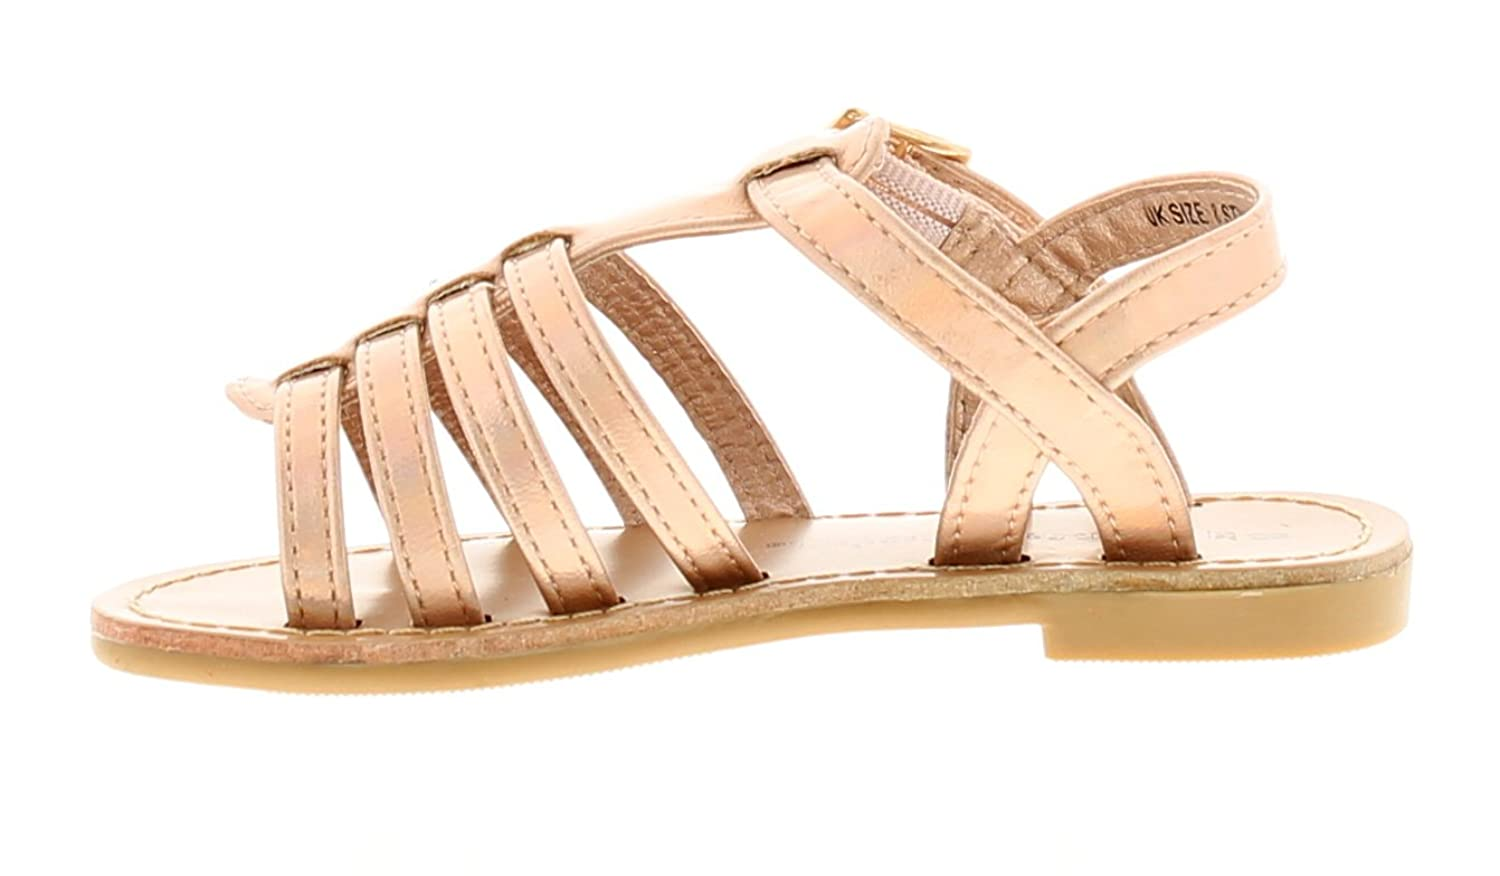 Princess Stardust New Younger Girls/Childrens Rose Gold Buckle Fastening  Sandals - Rose Gold - UK Sizes 6-12: Amazon.co.uk: Shoes & Bags